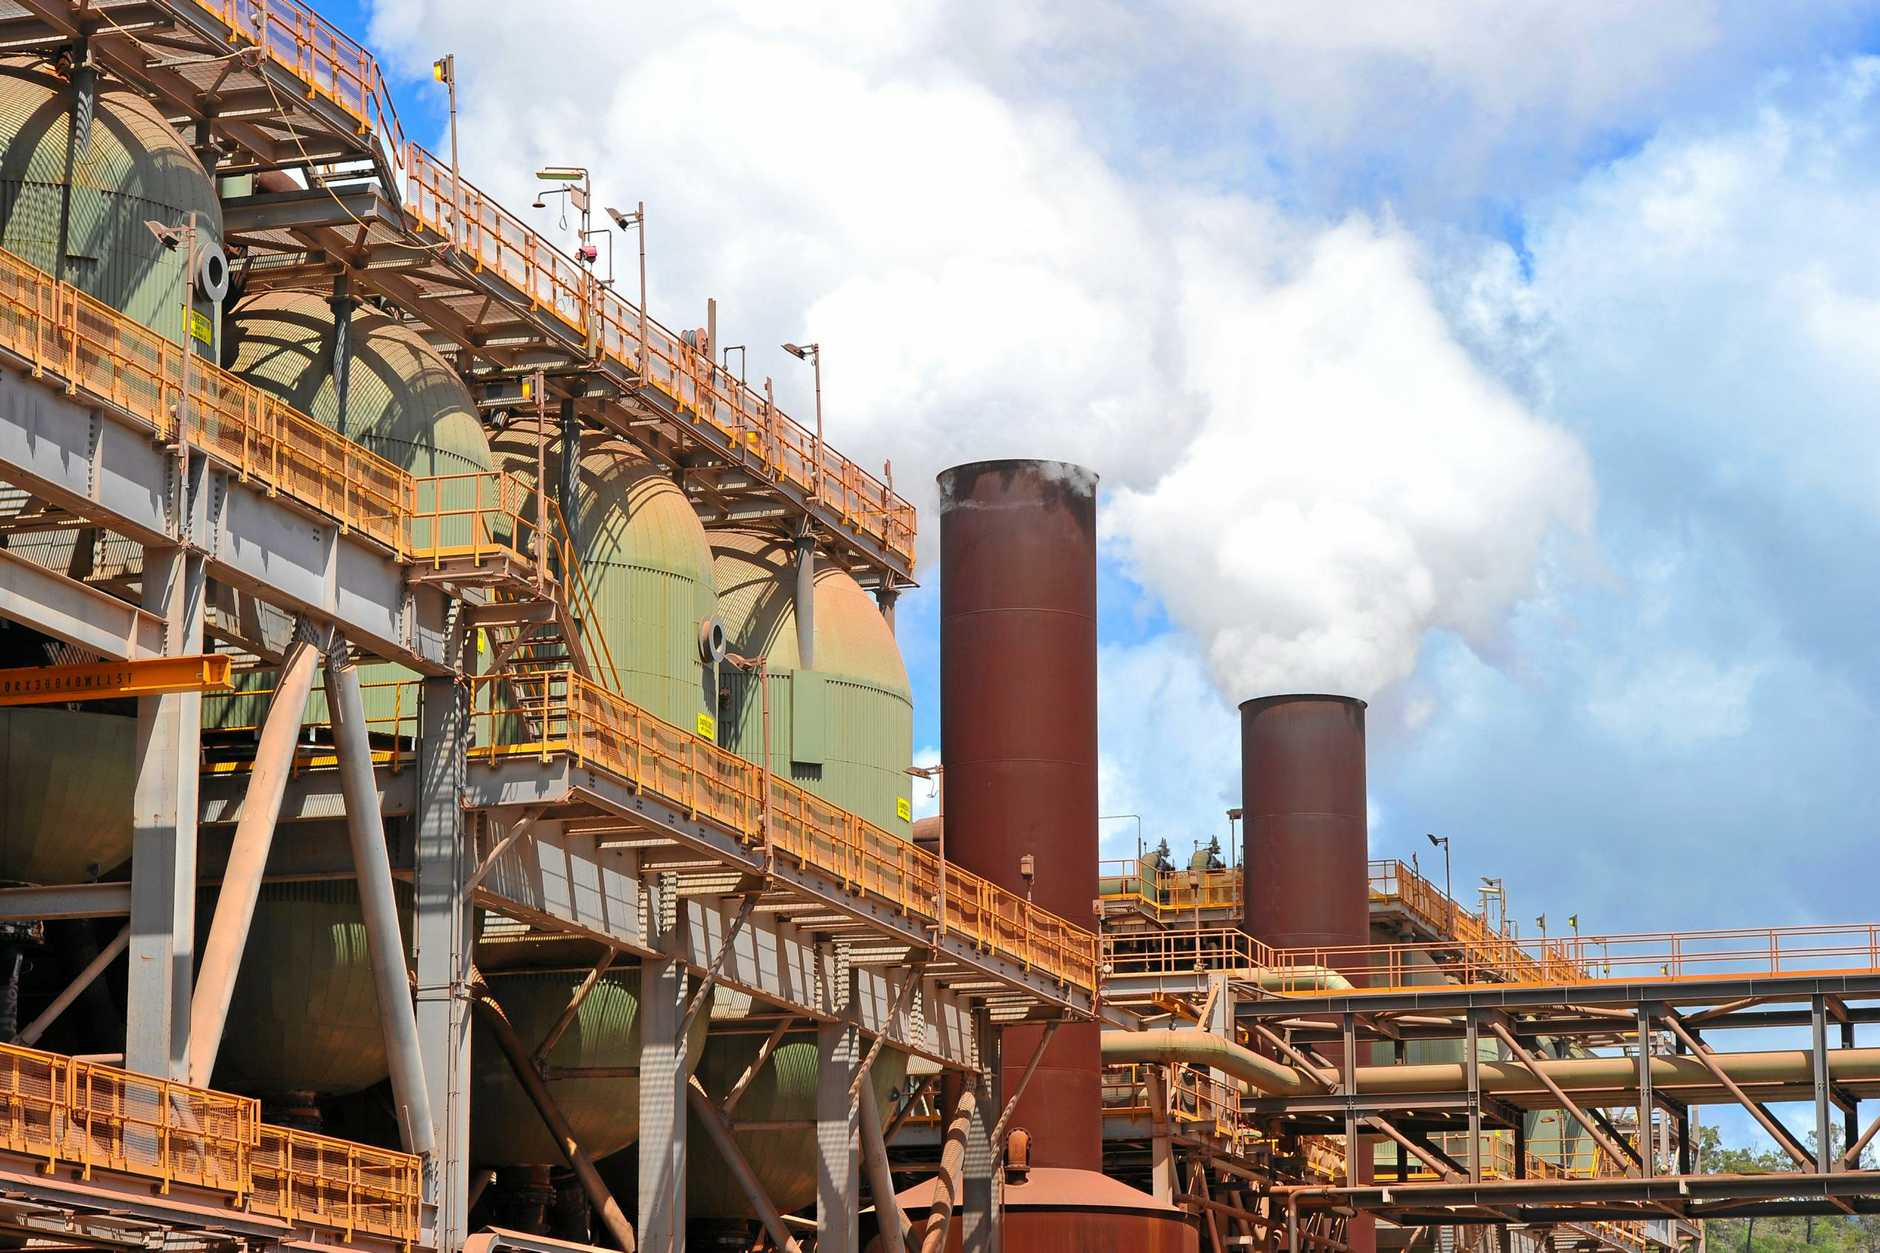 The mining giant's first quarter report showed Yarwun produced 813,000 of alumina during the first three months of the year.